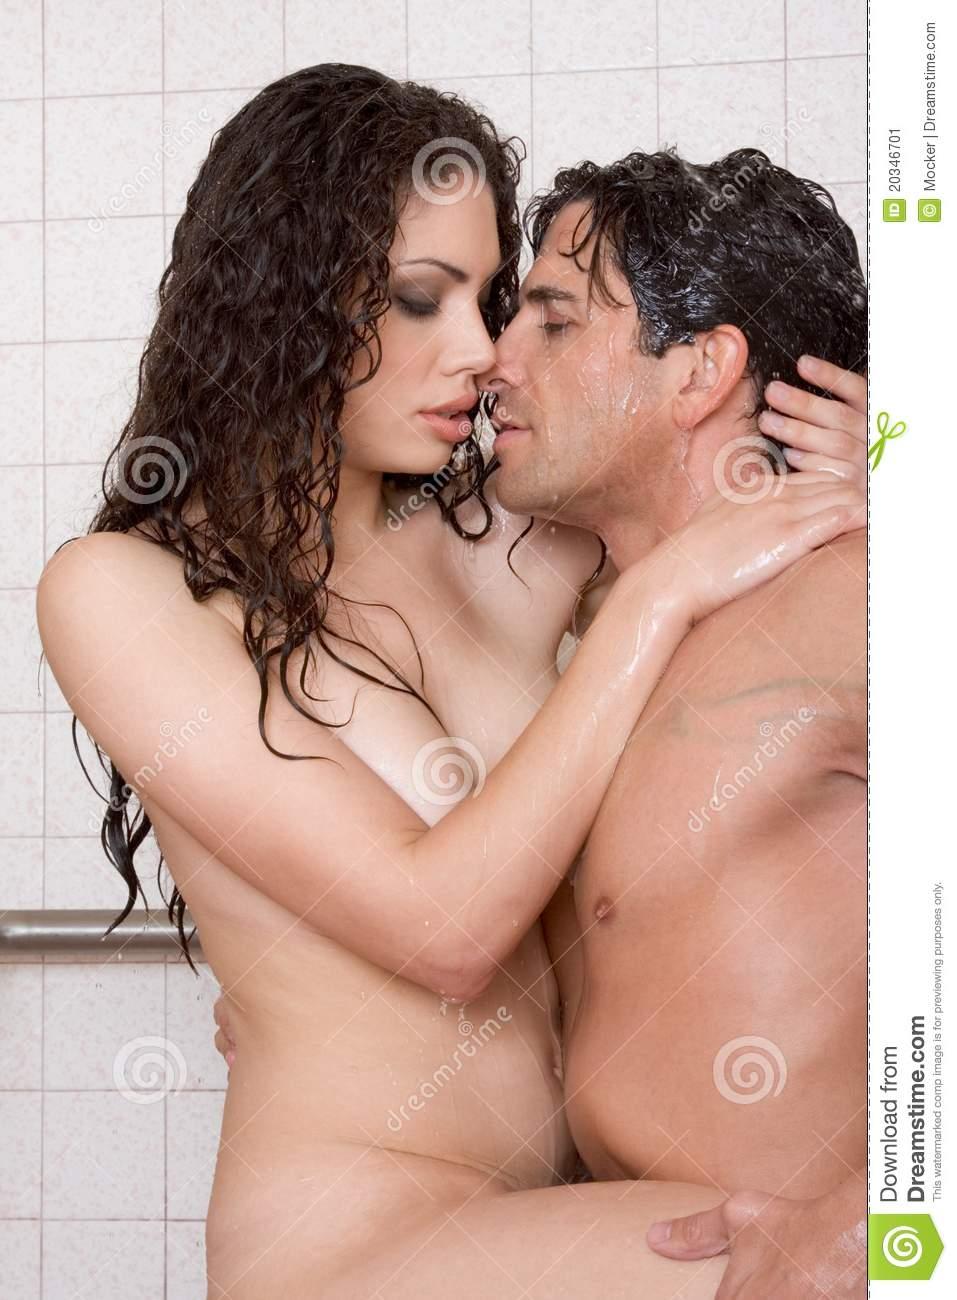 hot nude men and girls in bathroom